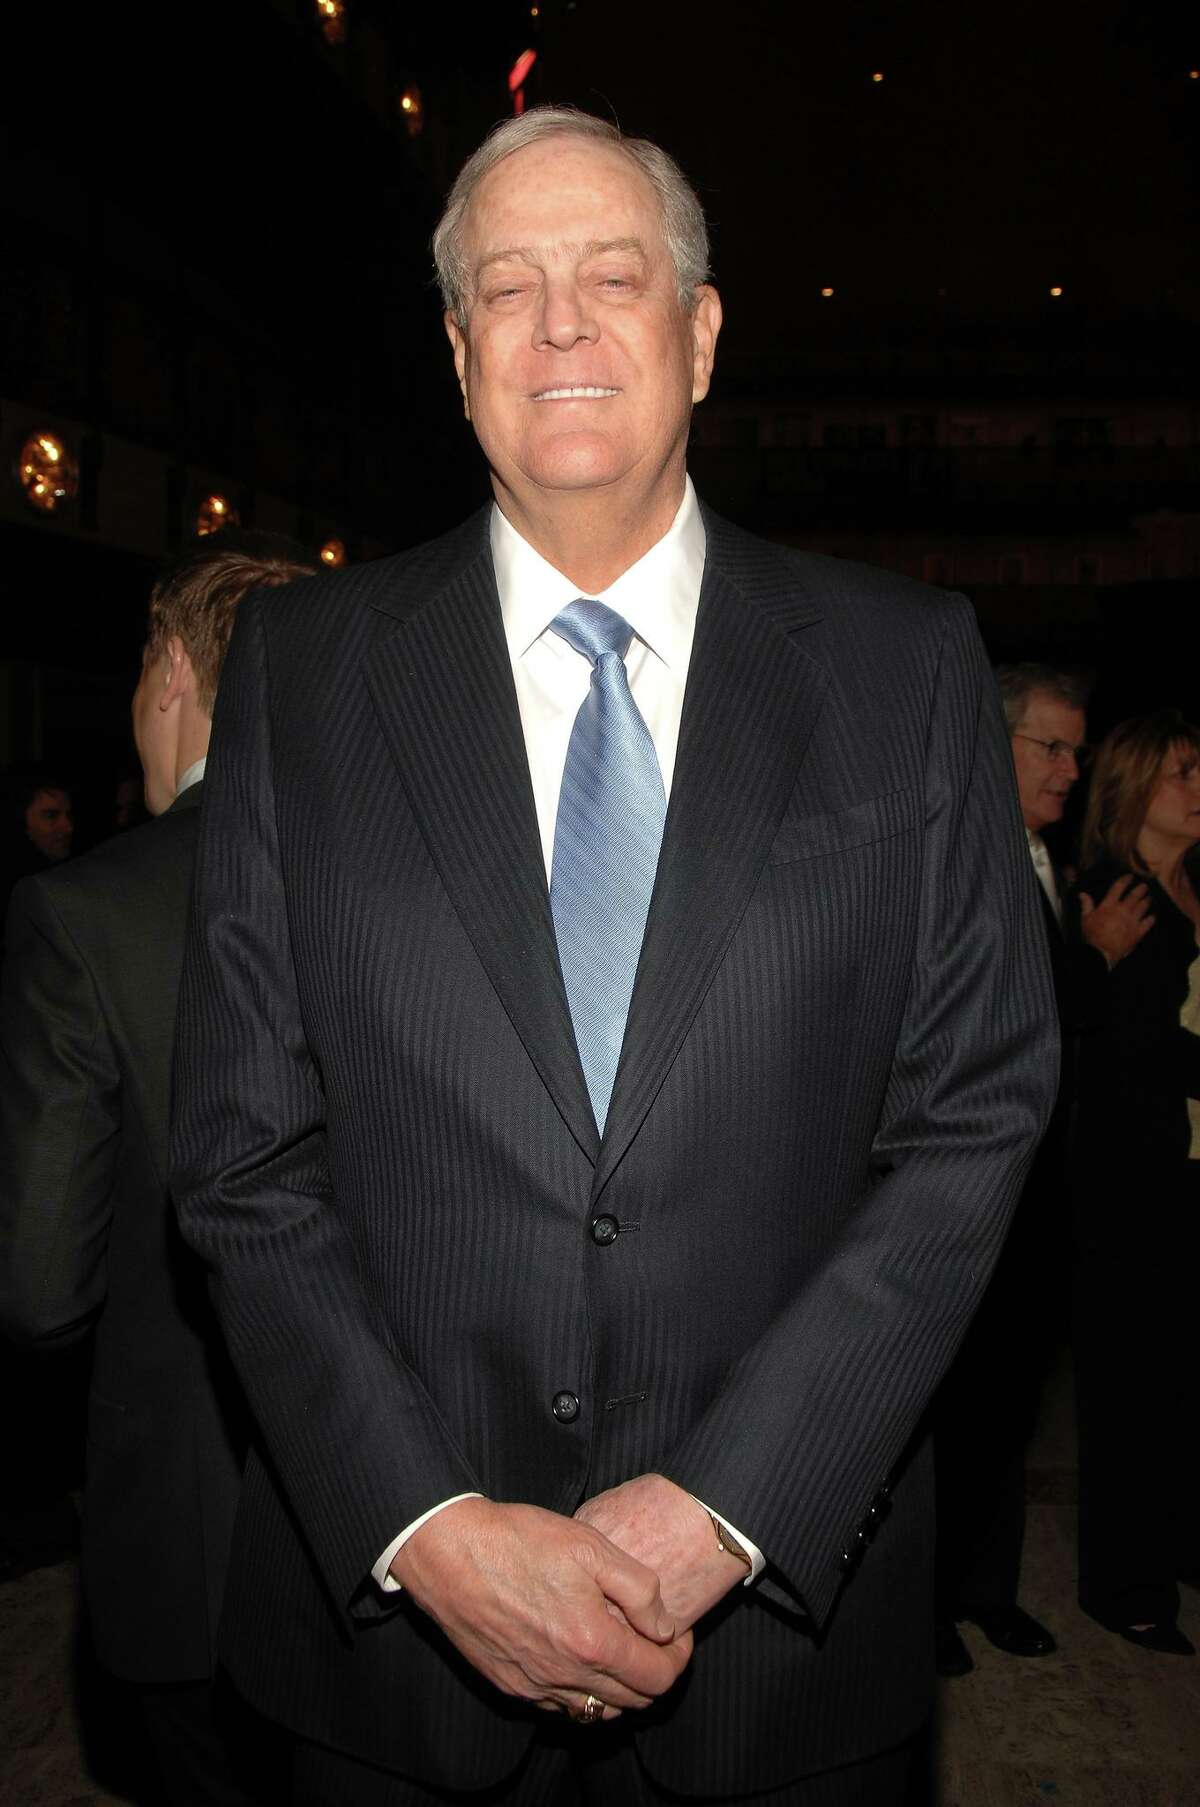 Billionaire oilman David Koch, major defender of the fossil fuel industry. Koch Industries has given $950,000 to the campaign against Initiative 1631, which would impose a carbon fee on most (but not all) major emitters of greenhouse gases in Washington.